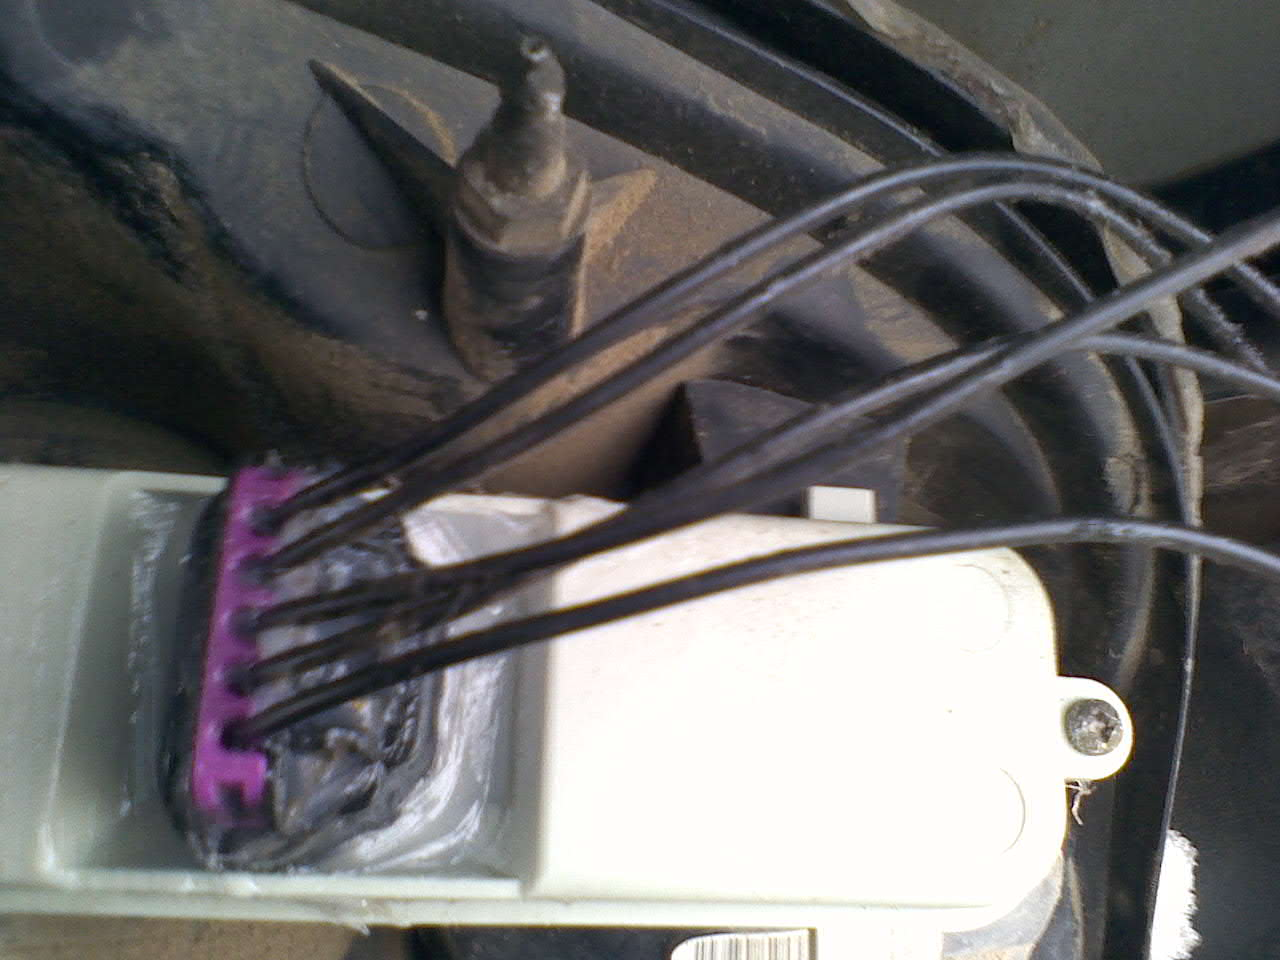 2012 01 20_181459_0120121112 i have a 2003 chevy trailblazer i need to know the wiring colors 2003 chevy trailblazer tail light wiring harness at gsmx.co